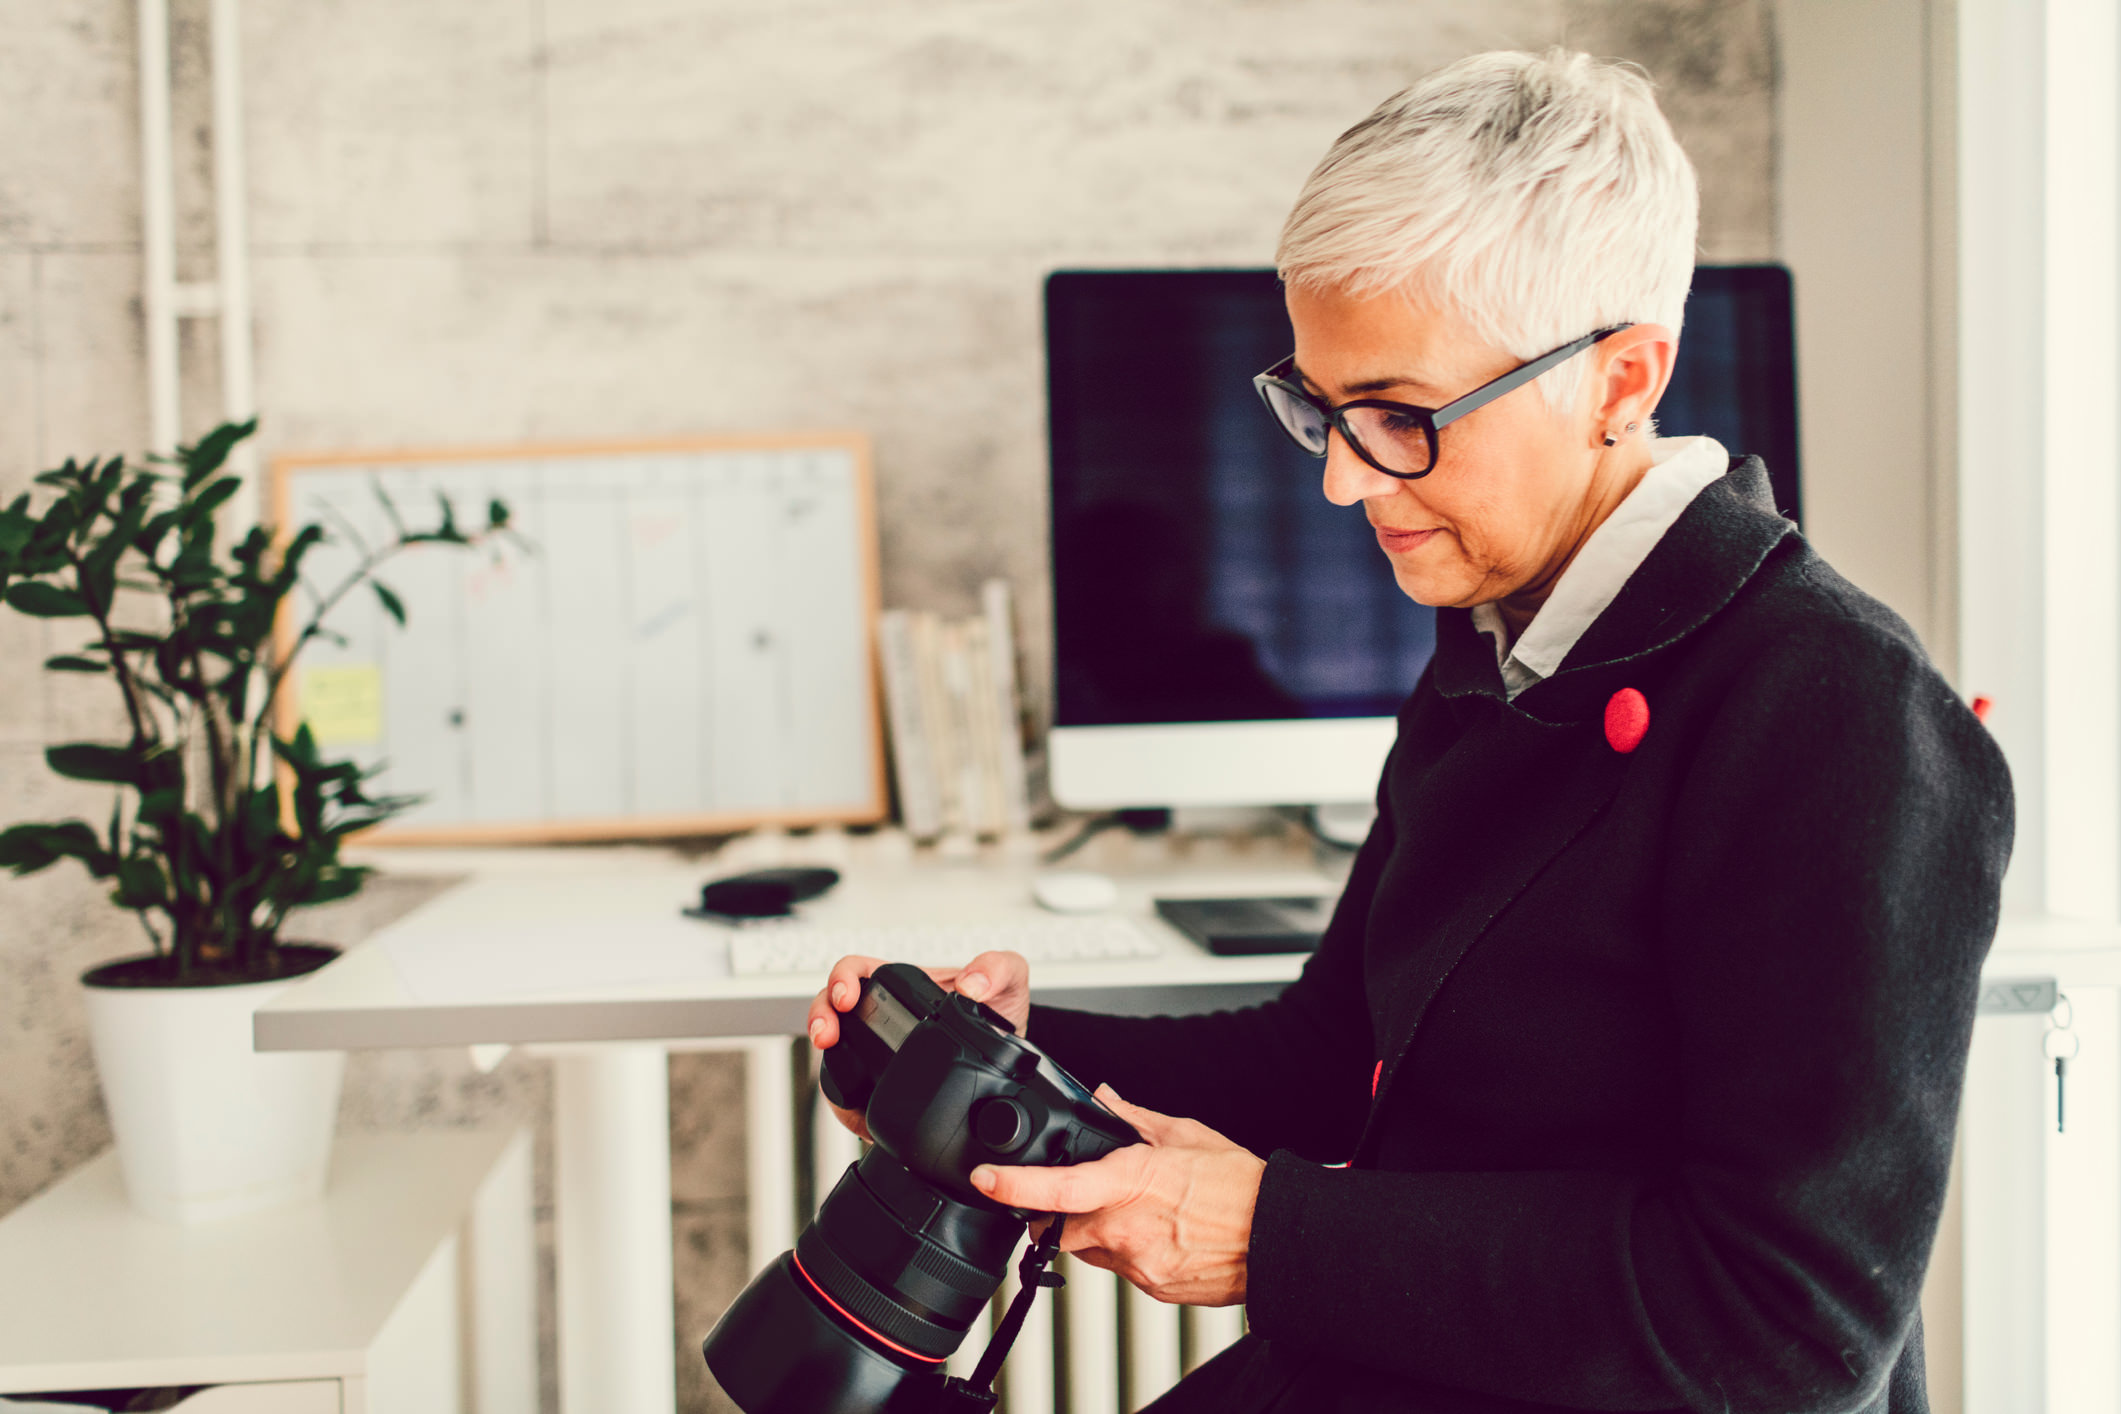 Unique Photography Products That Will Help You Grow Your Business